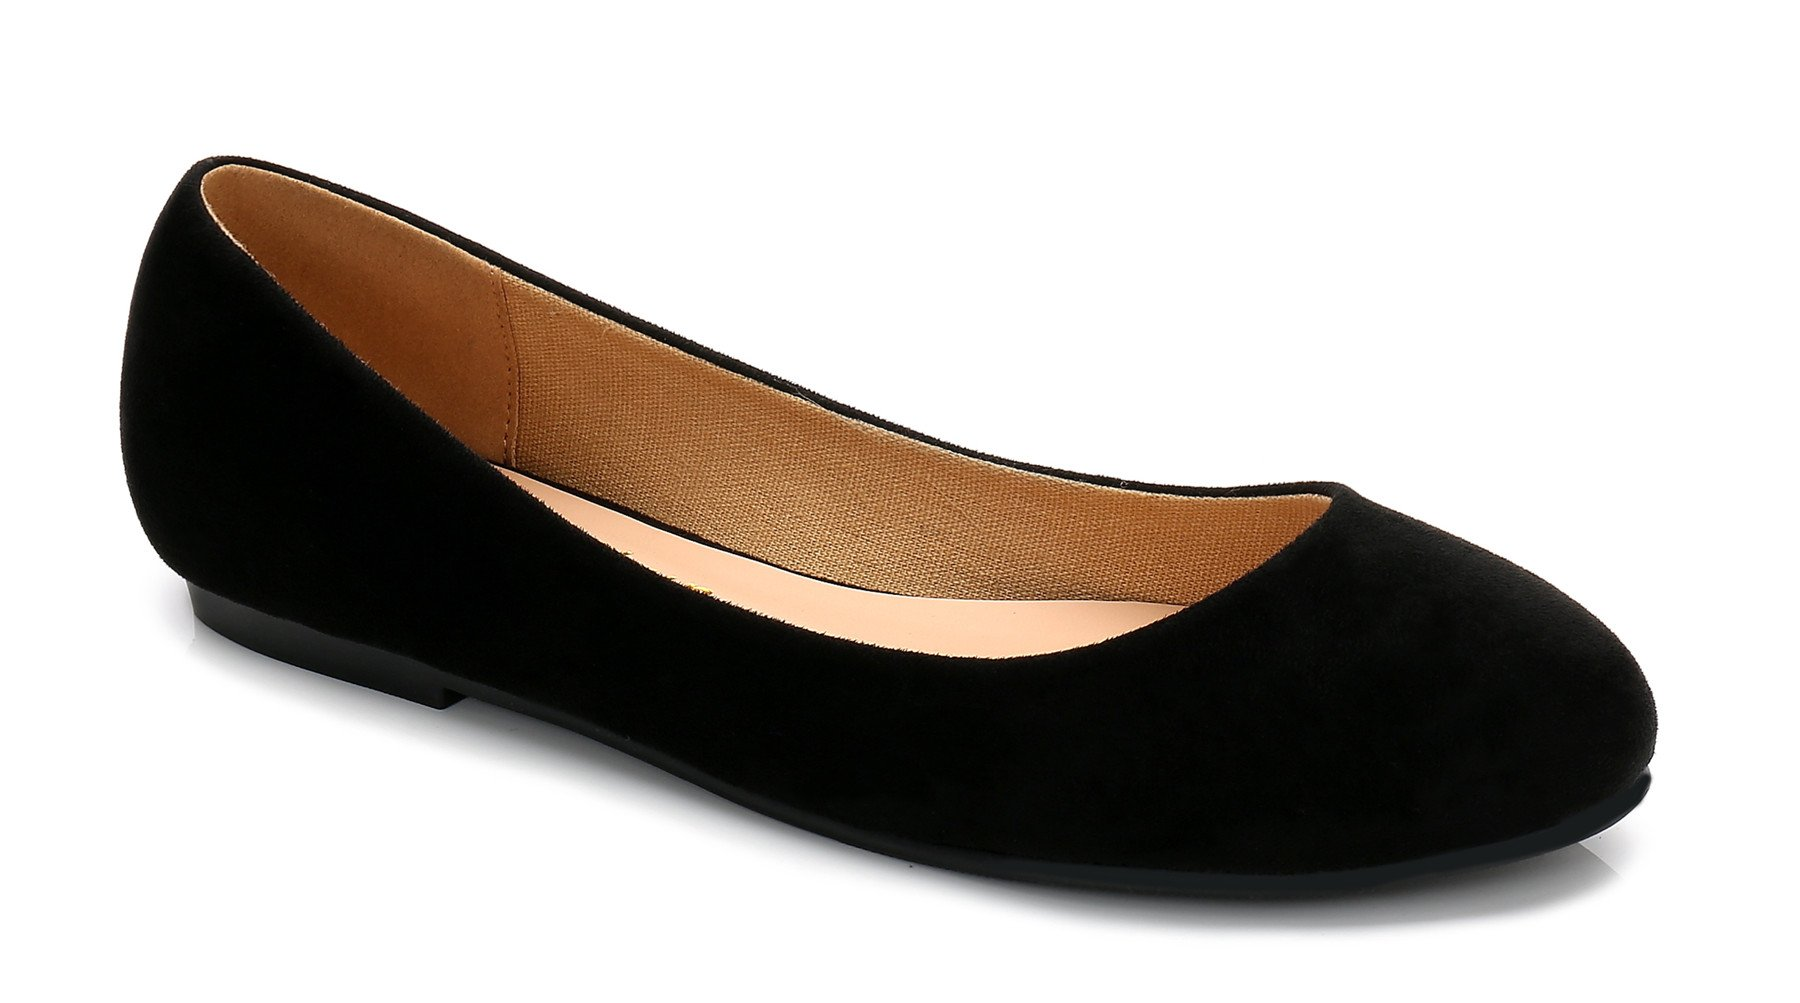 ComeShun Black Womens Shoes Comfort Slip On Casual Ballet Flats Size